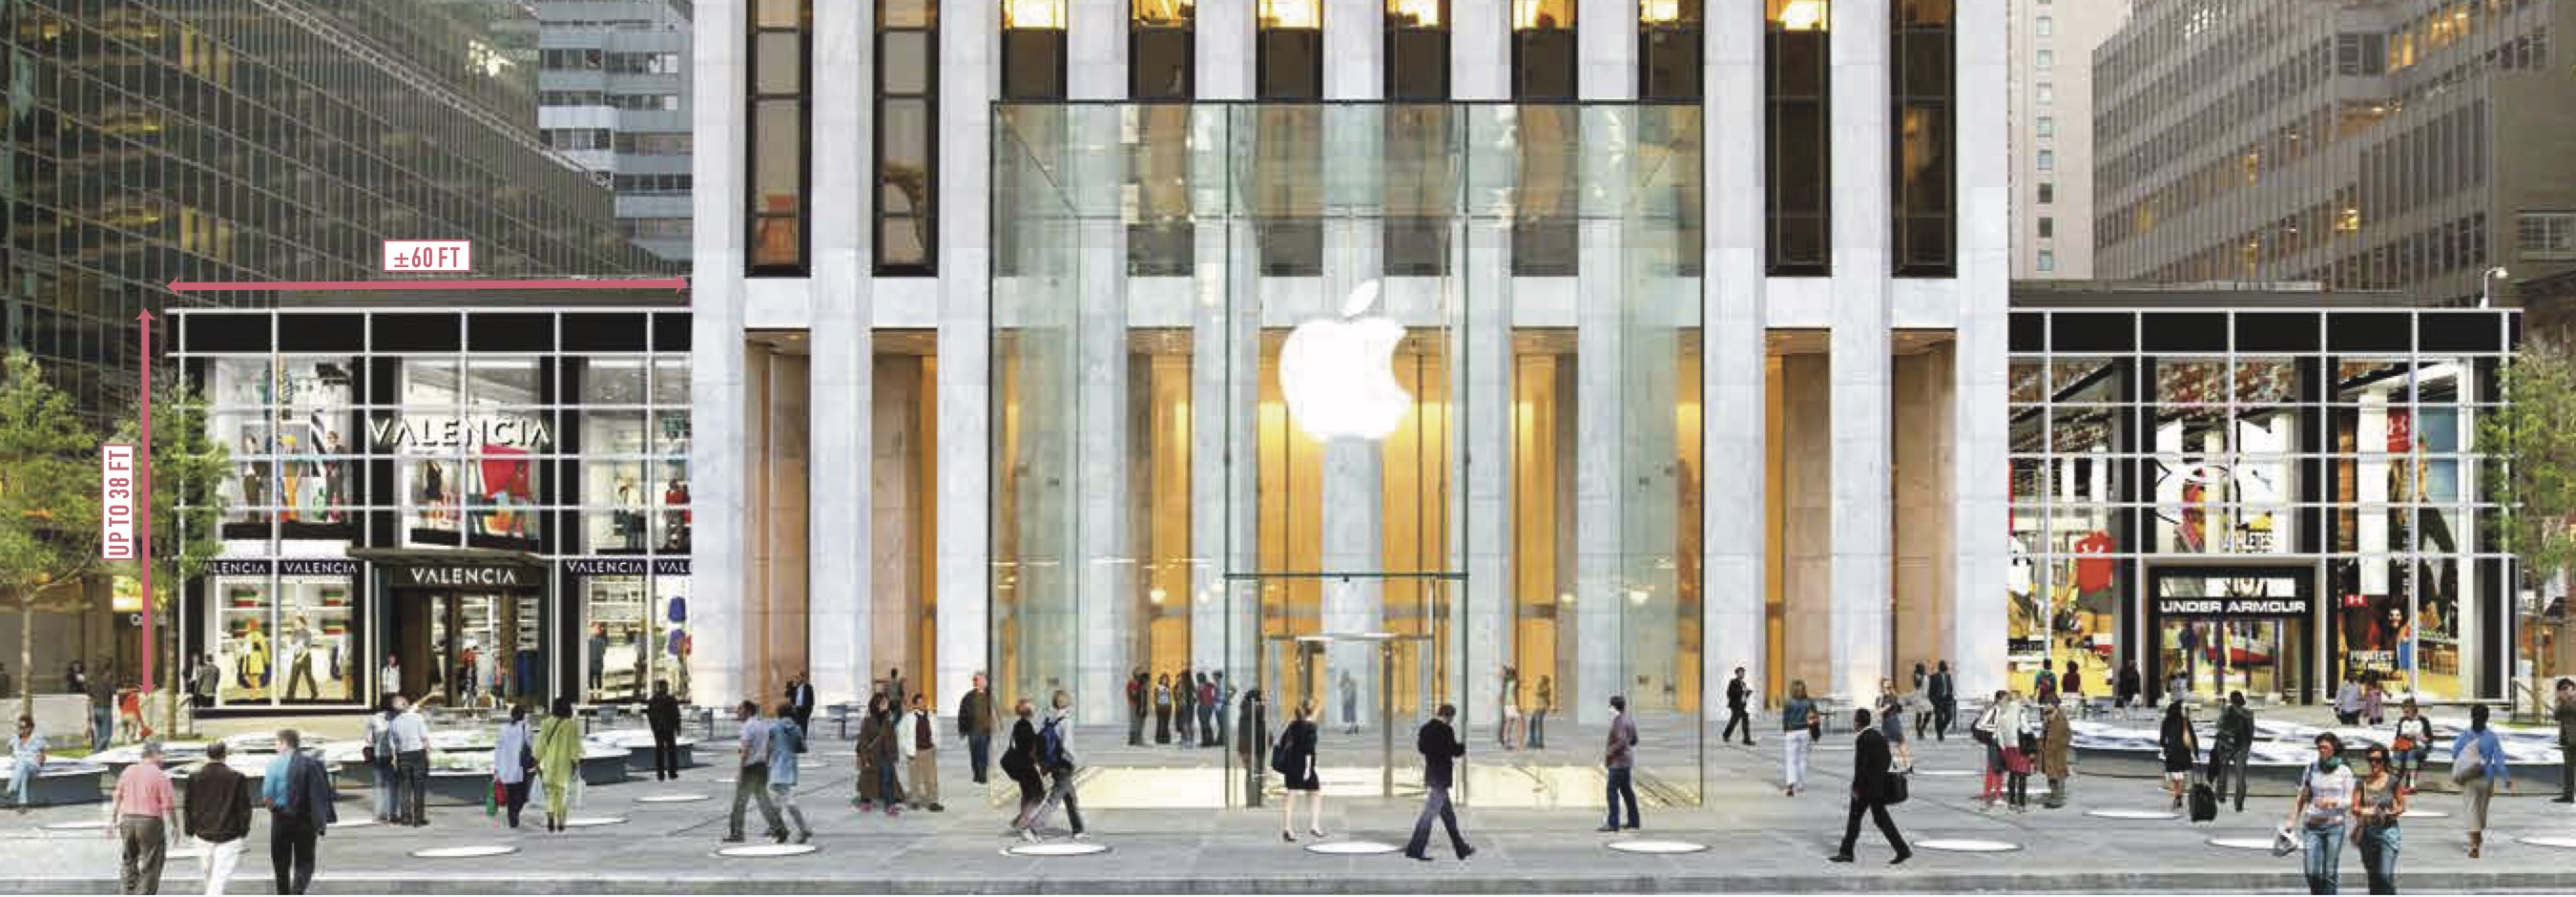 Apple Fifth Avenue: When will the cube reopen? - 9to5Mac